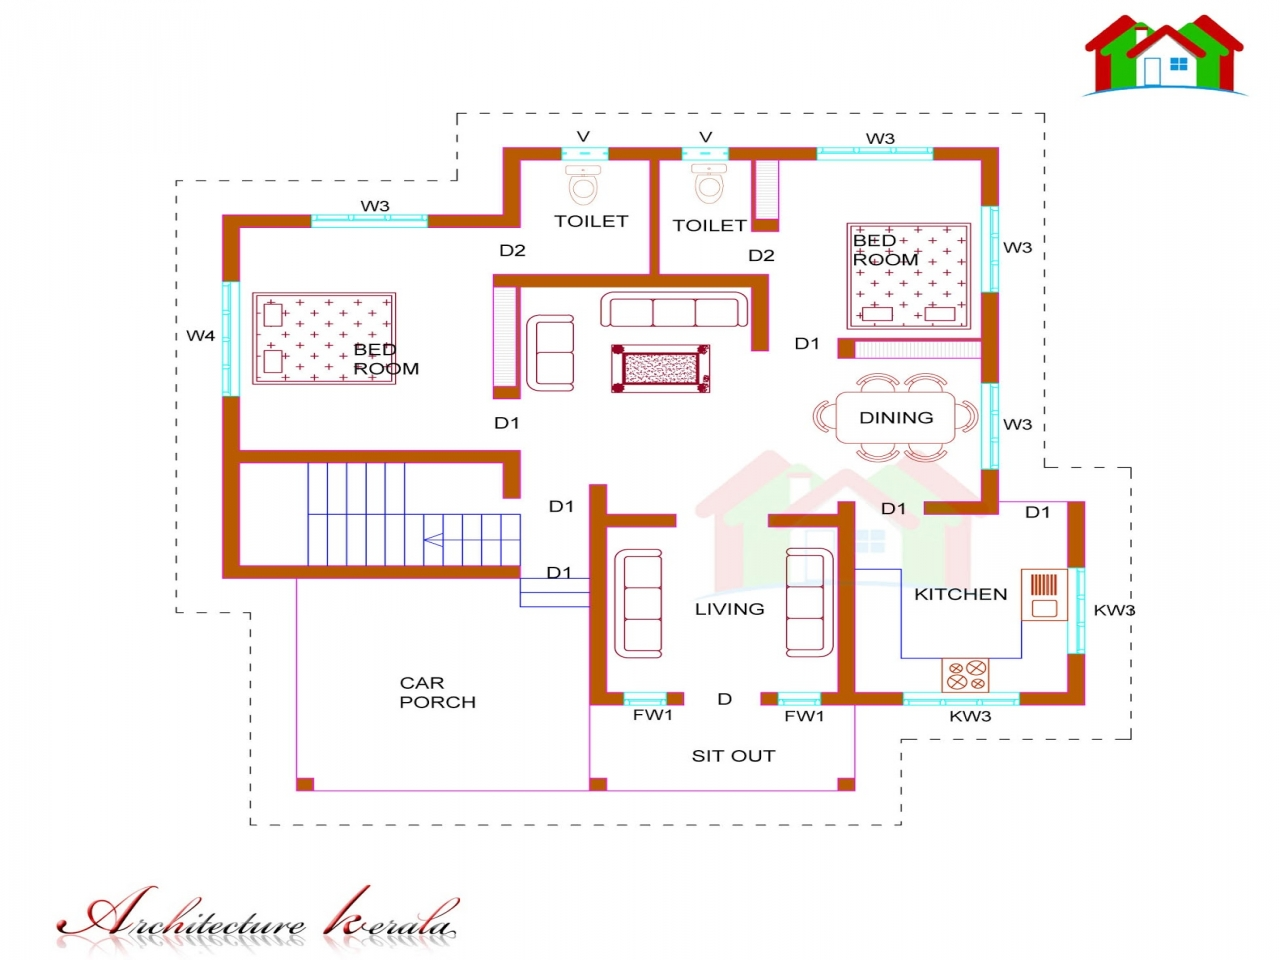 1100 Square Feet House Plans 2400 Square Foot Modular Home